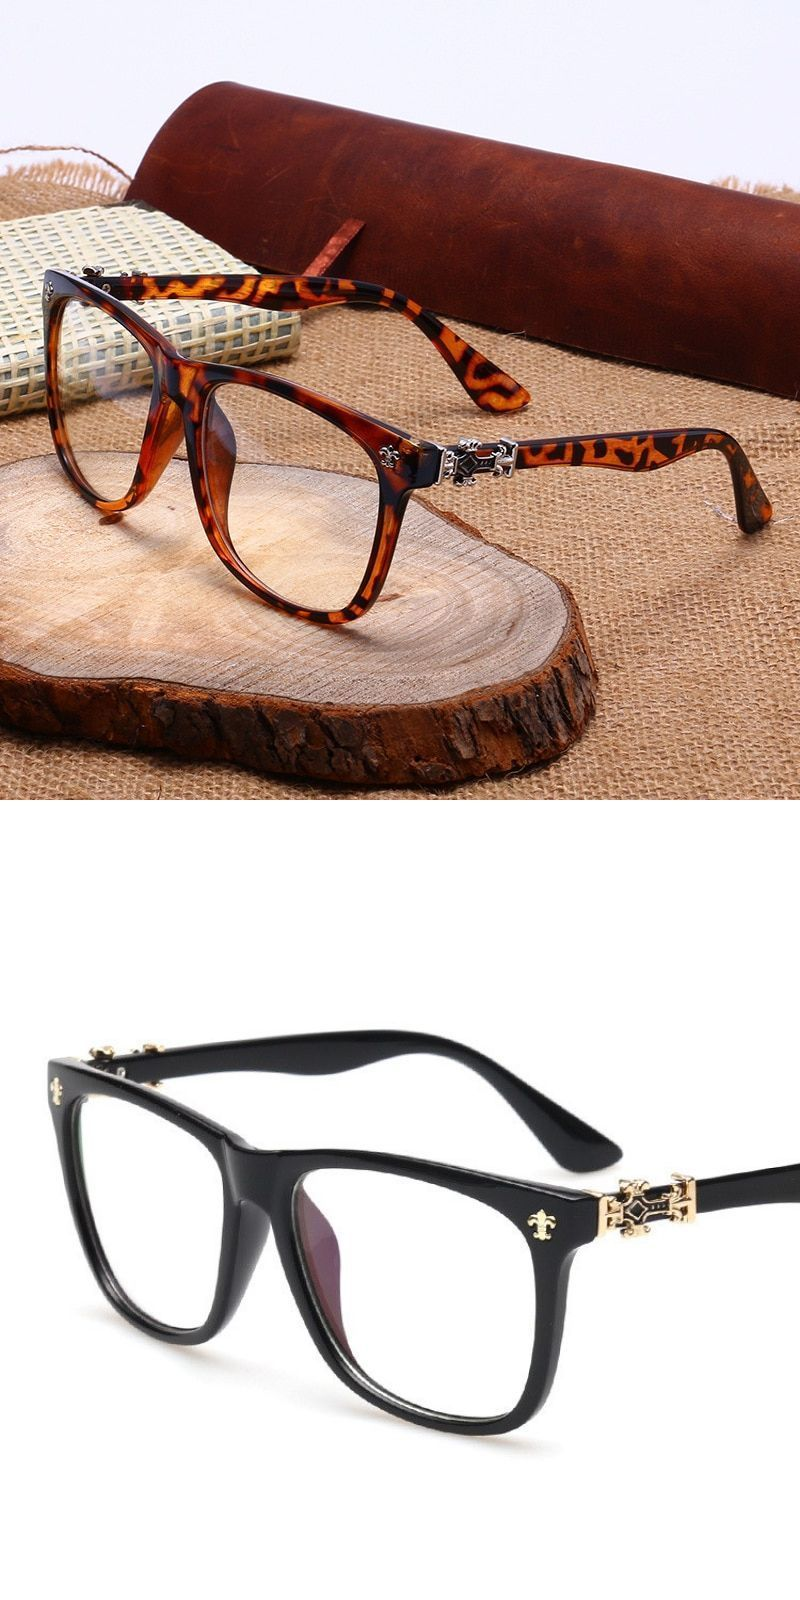 fe01ca5f28f Vintage eyeglass frames women men designer eyewear frame optical eye glasses  frame can match photochromic lenses  frames  eyewear  accessories  women ...